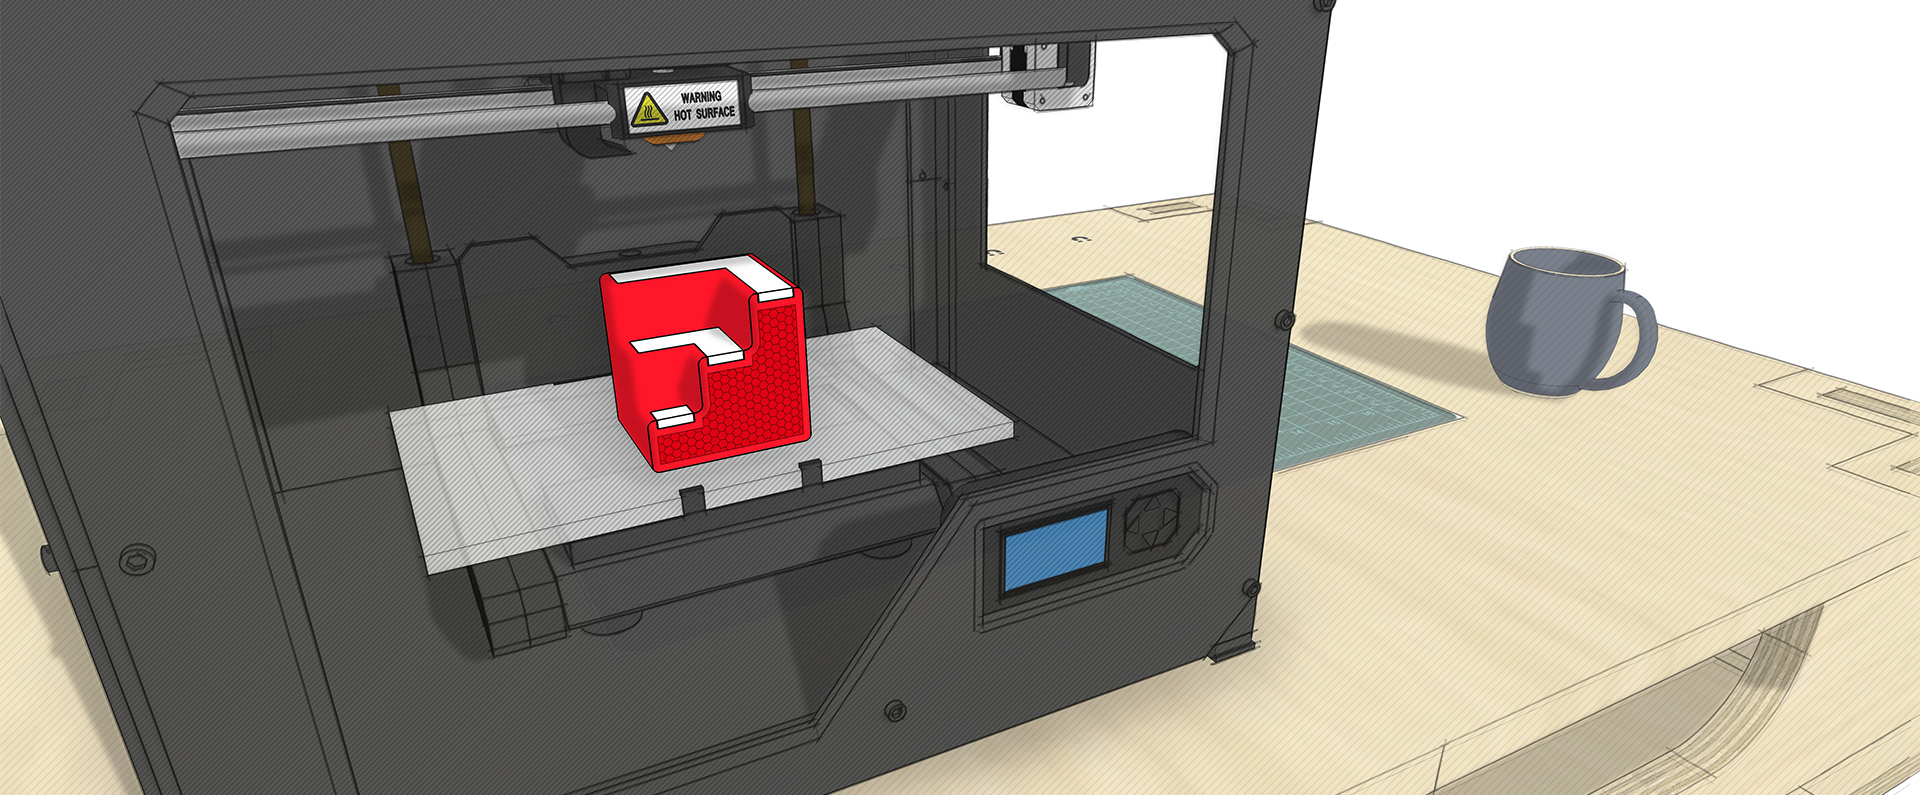 Sketchup for 3d printing sketchup Making models for 3d printing